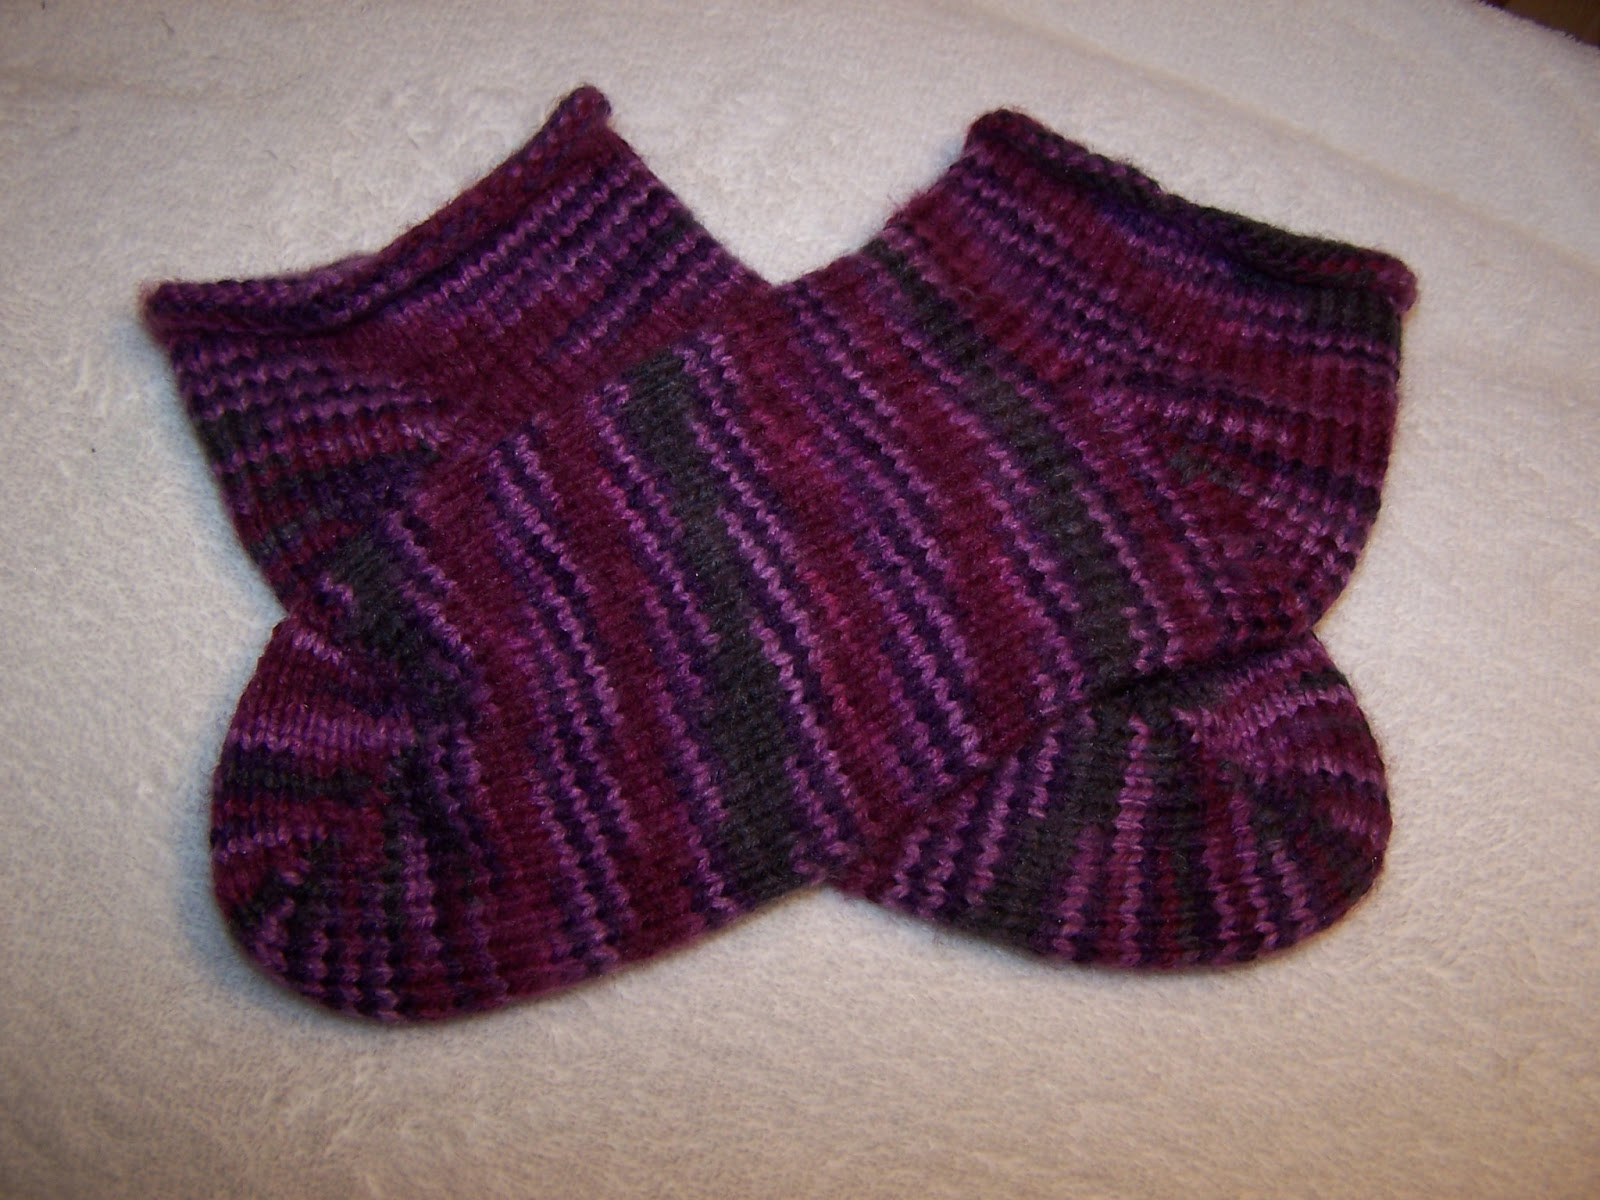 Knitting Loom Projects : Loom knitting meme projects and photos